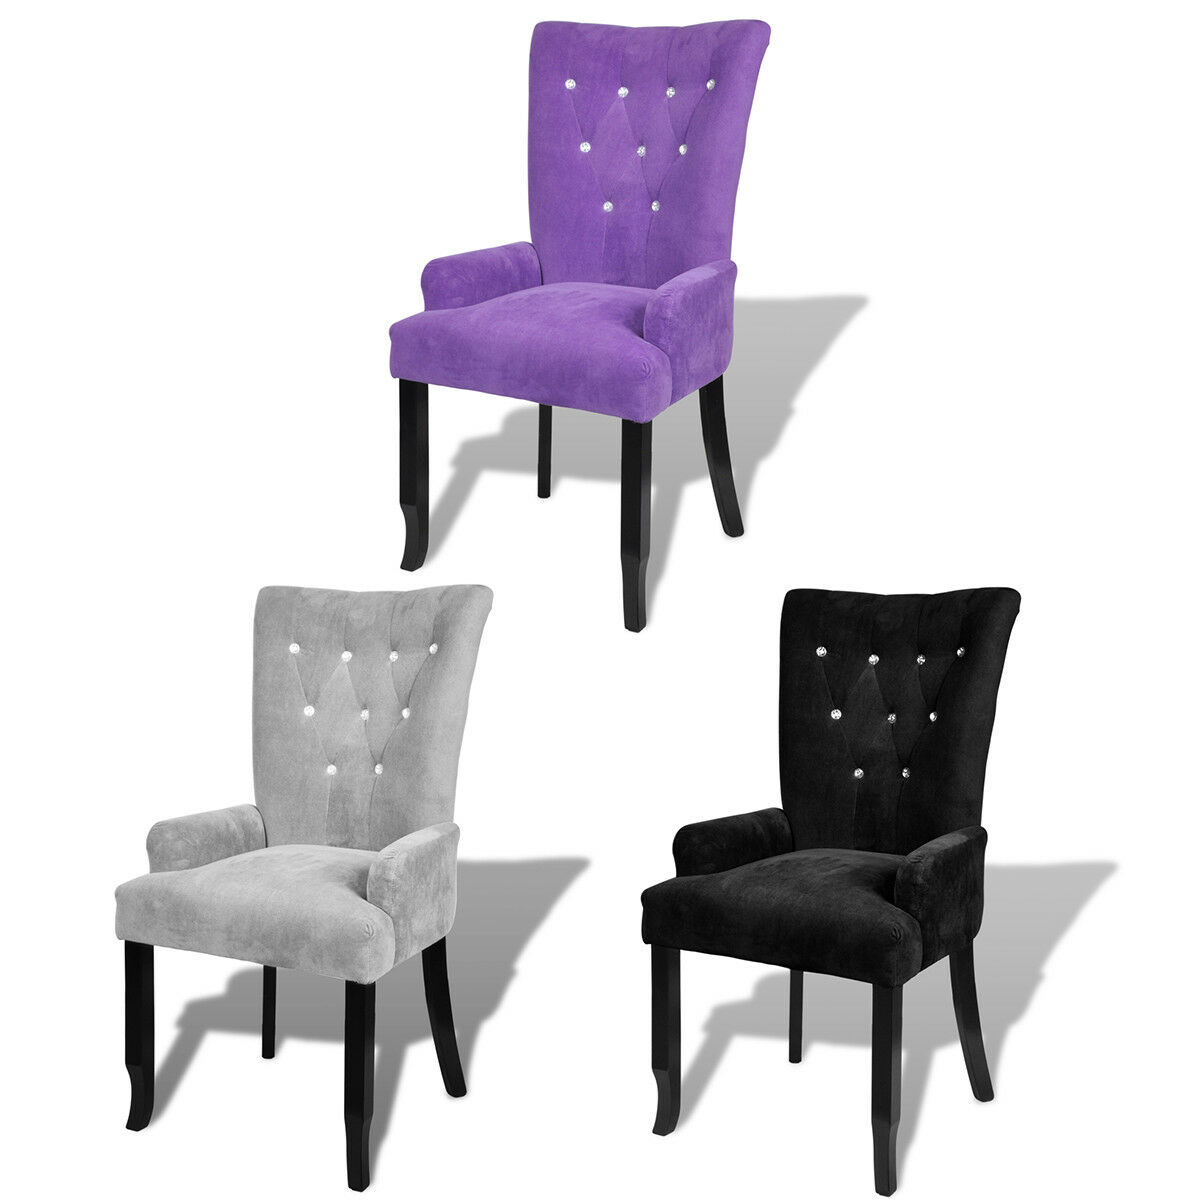 Luxury High Back Dining Chair Tufted Velvet Accent Armchair Purple Black Silver 1 Of 10free Shipping See More